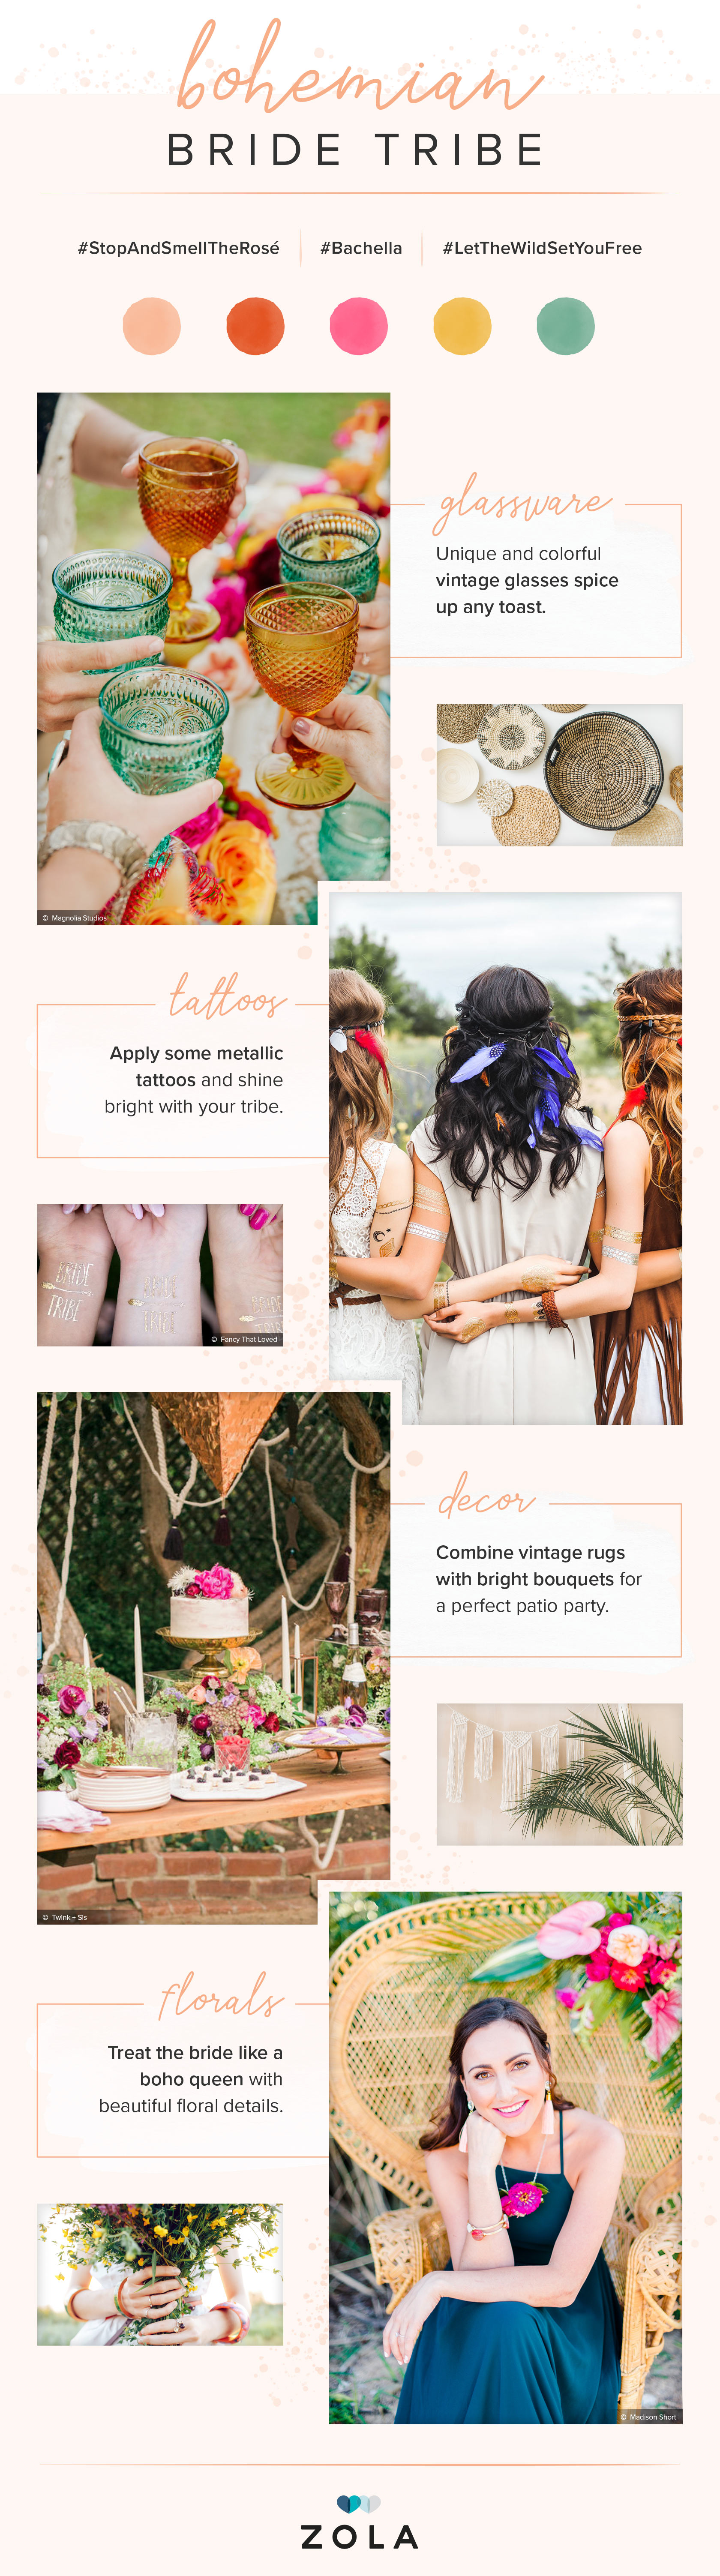 bachelorette-party-themes-and-ideas-DIY-bahelorette-party-themes-and-ideas-unique-bachelorette-party-ideas-tips-and-tricks-to-planning-your-bachelorette-party-savannah-wedding-planner-savannah-wedding-florist-savannah-wedding-dress-shop